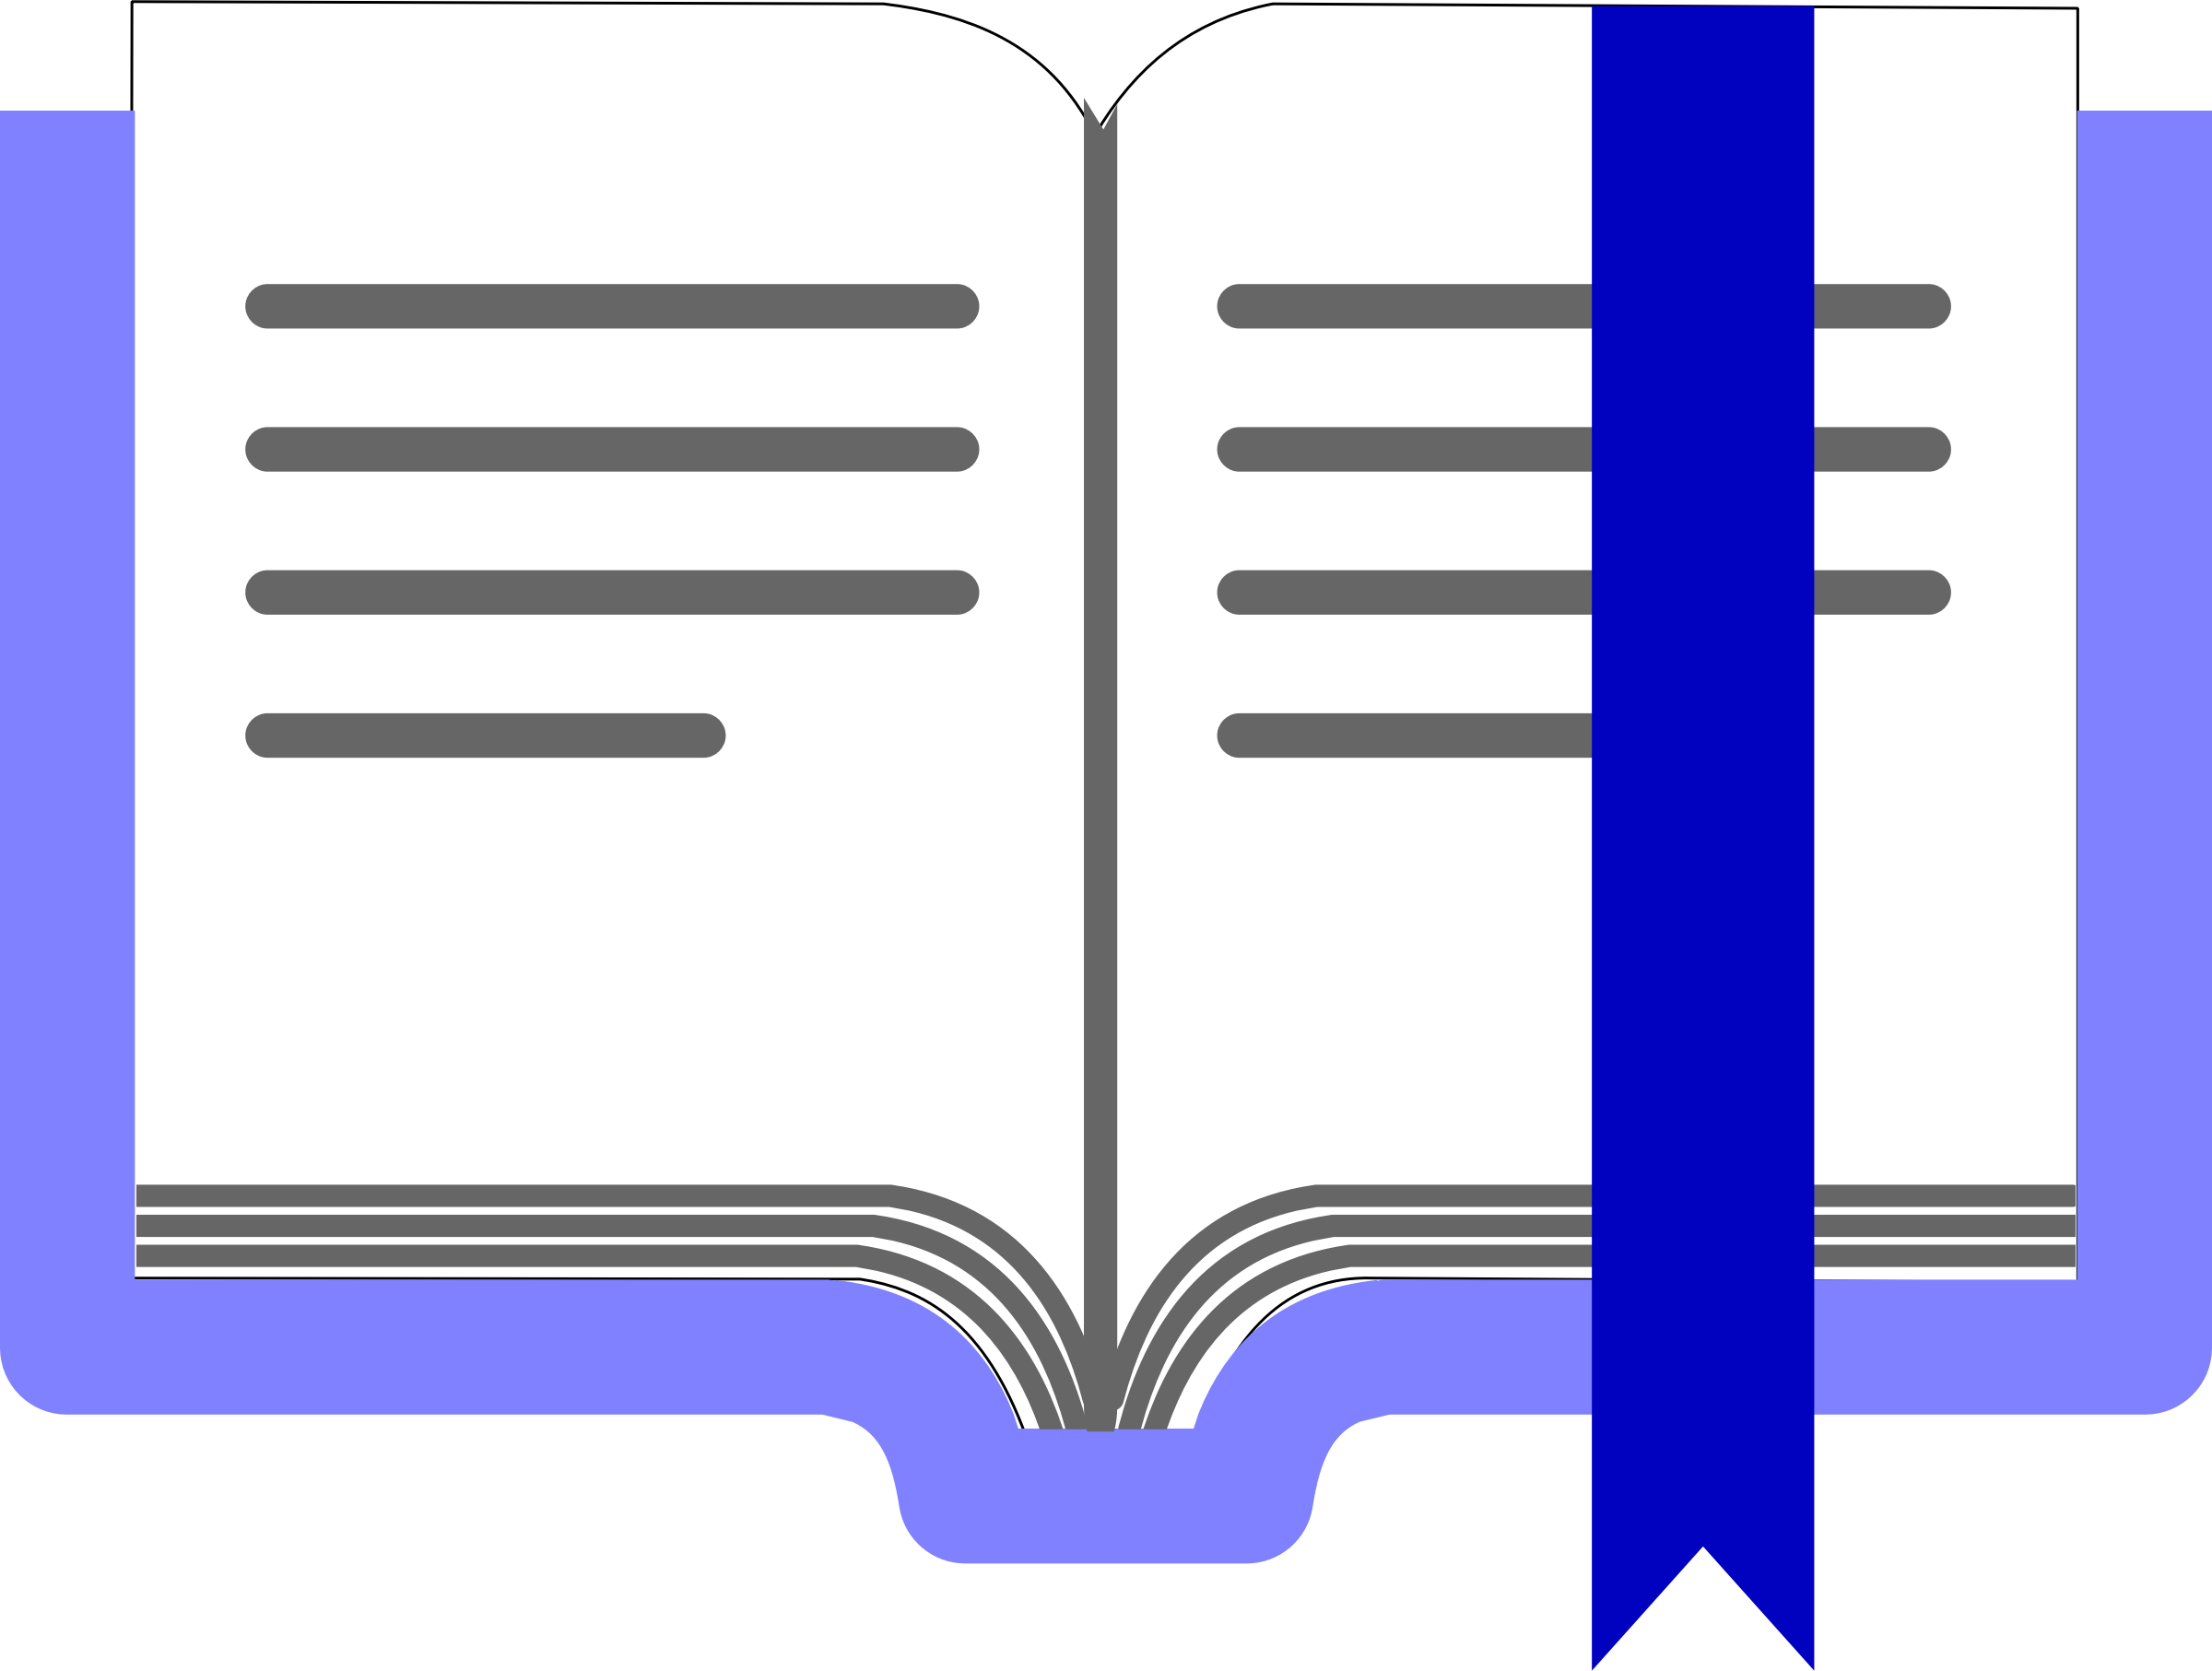 Book mark clipart picture royalty free library Clipart - Open Book with Marker picture royalty free library